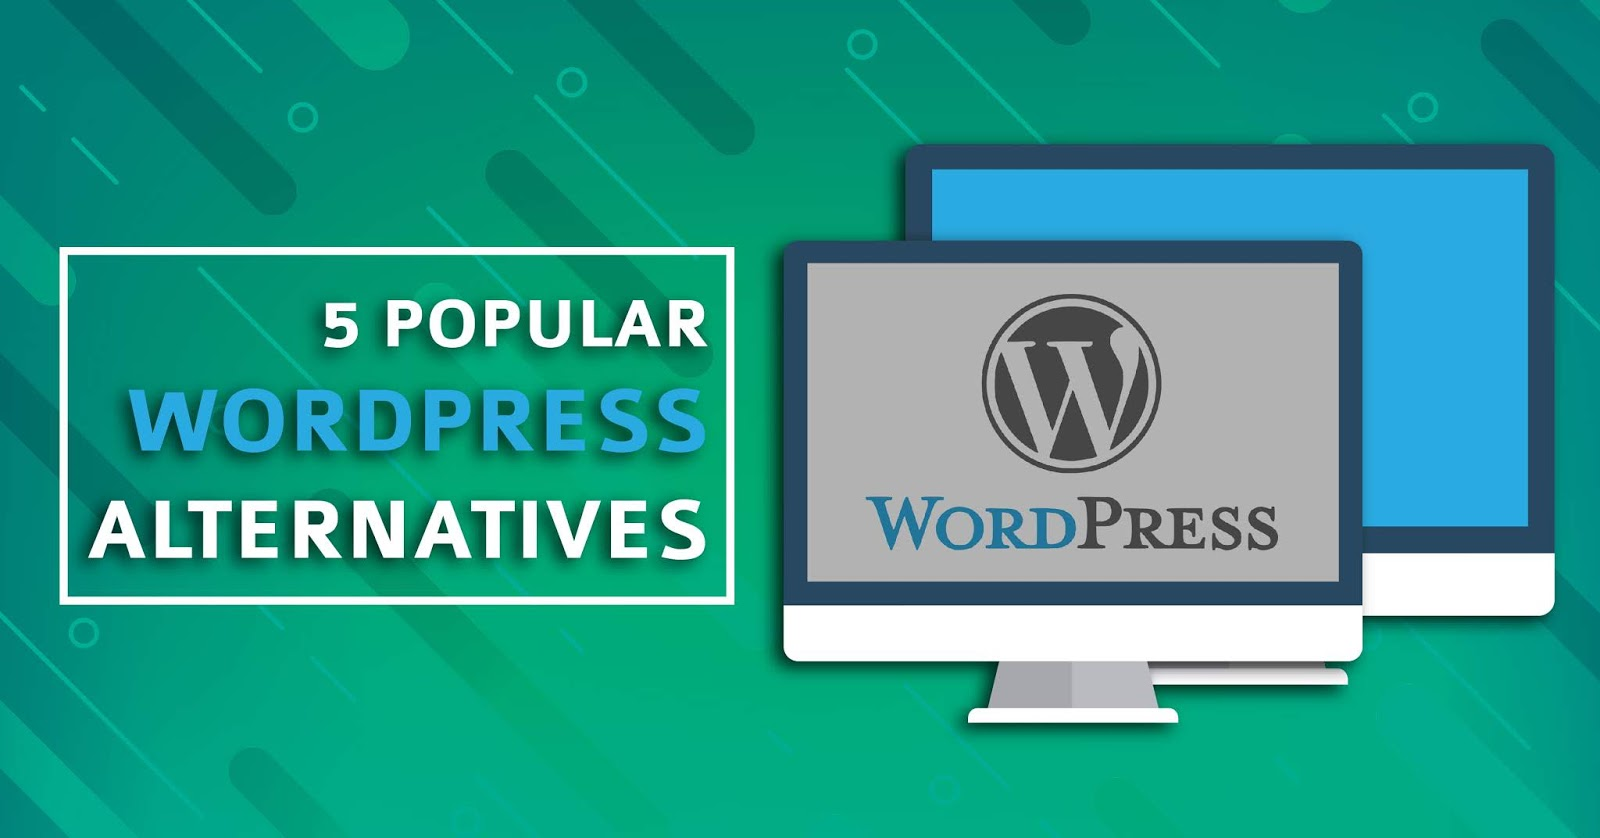 5 Popular WordPress Alternatives CMS